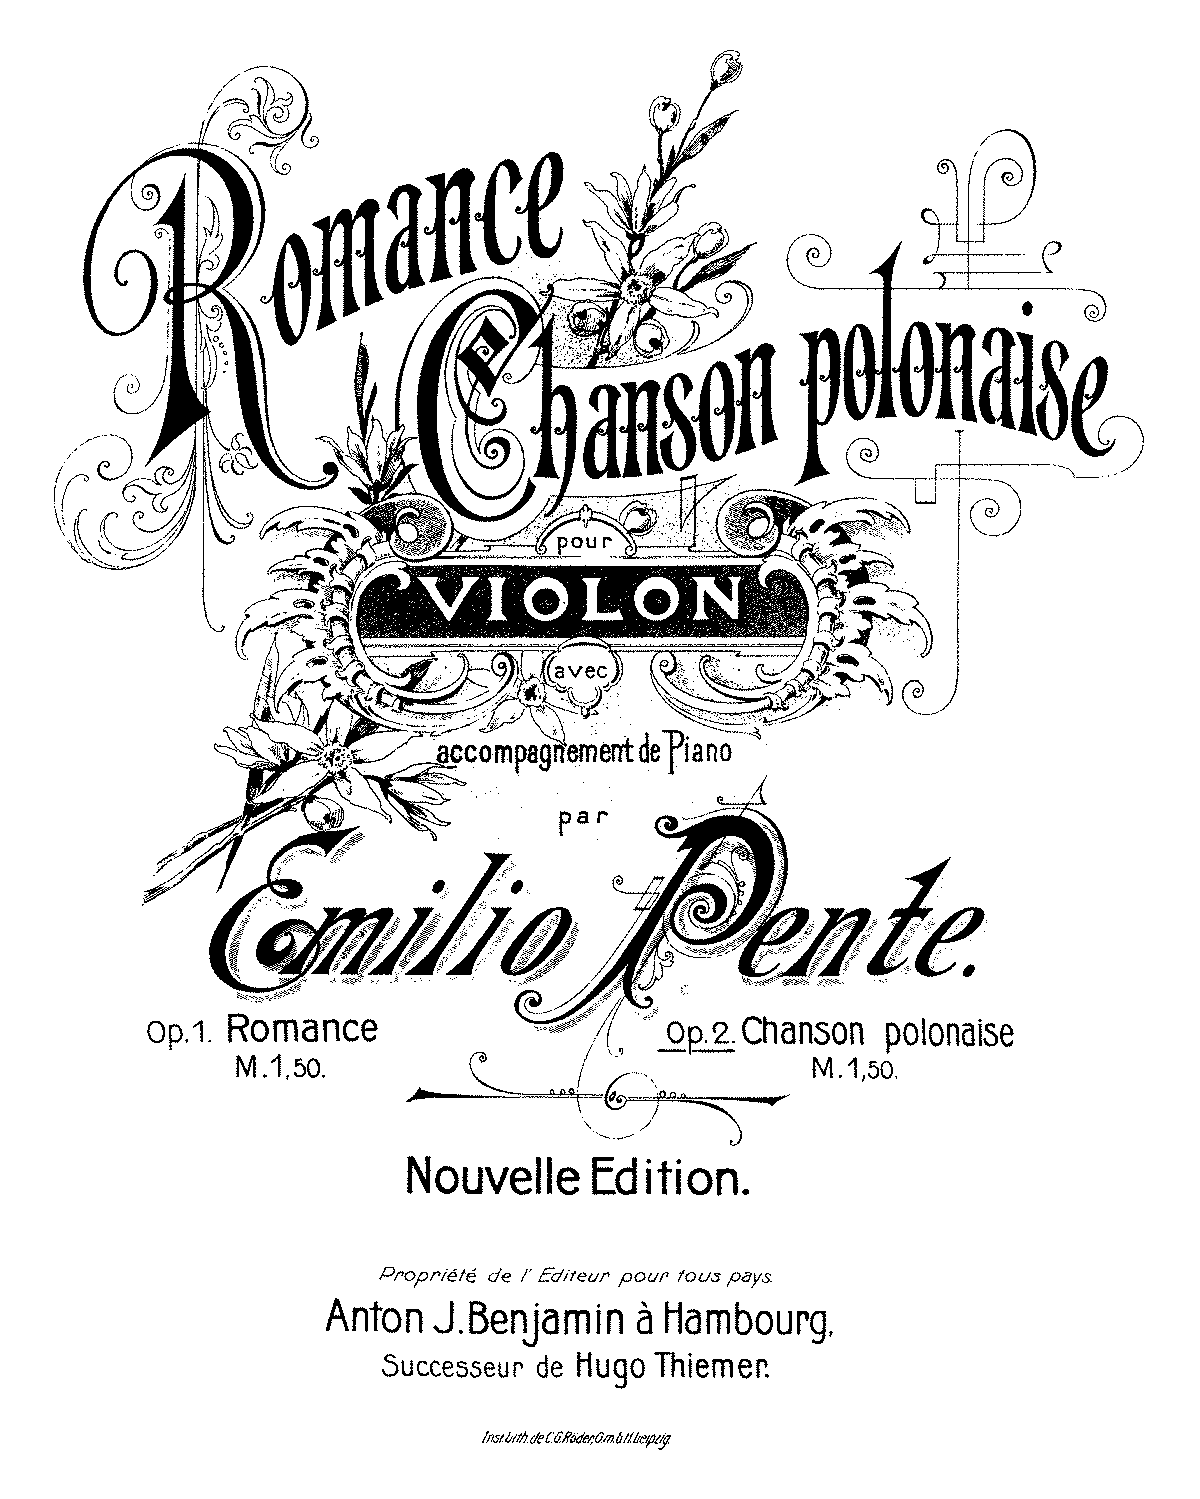 PMLP230317-EPente Chanson polonaise, Op.2 newedition.pdf